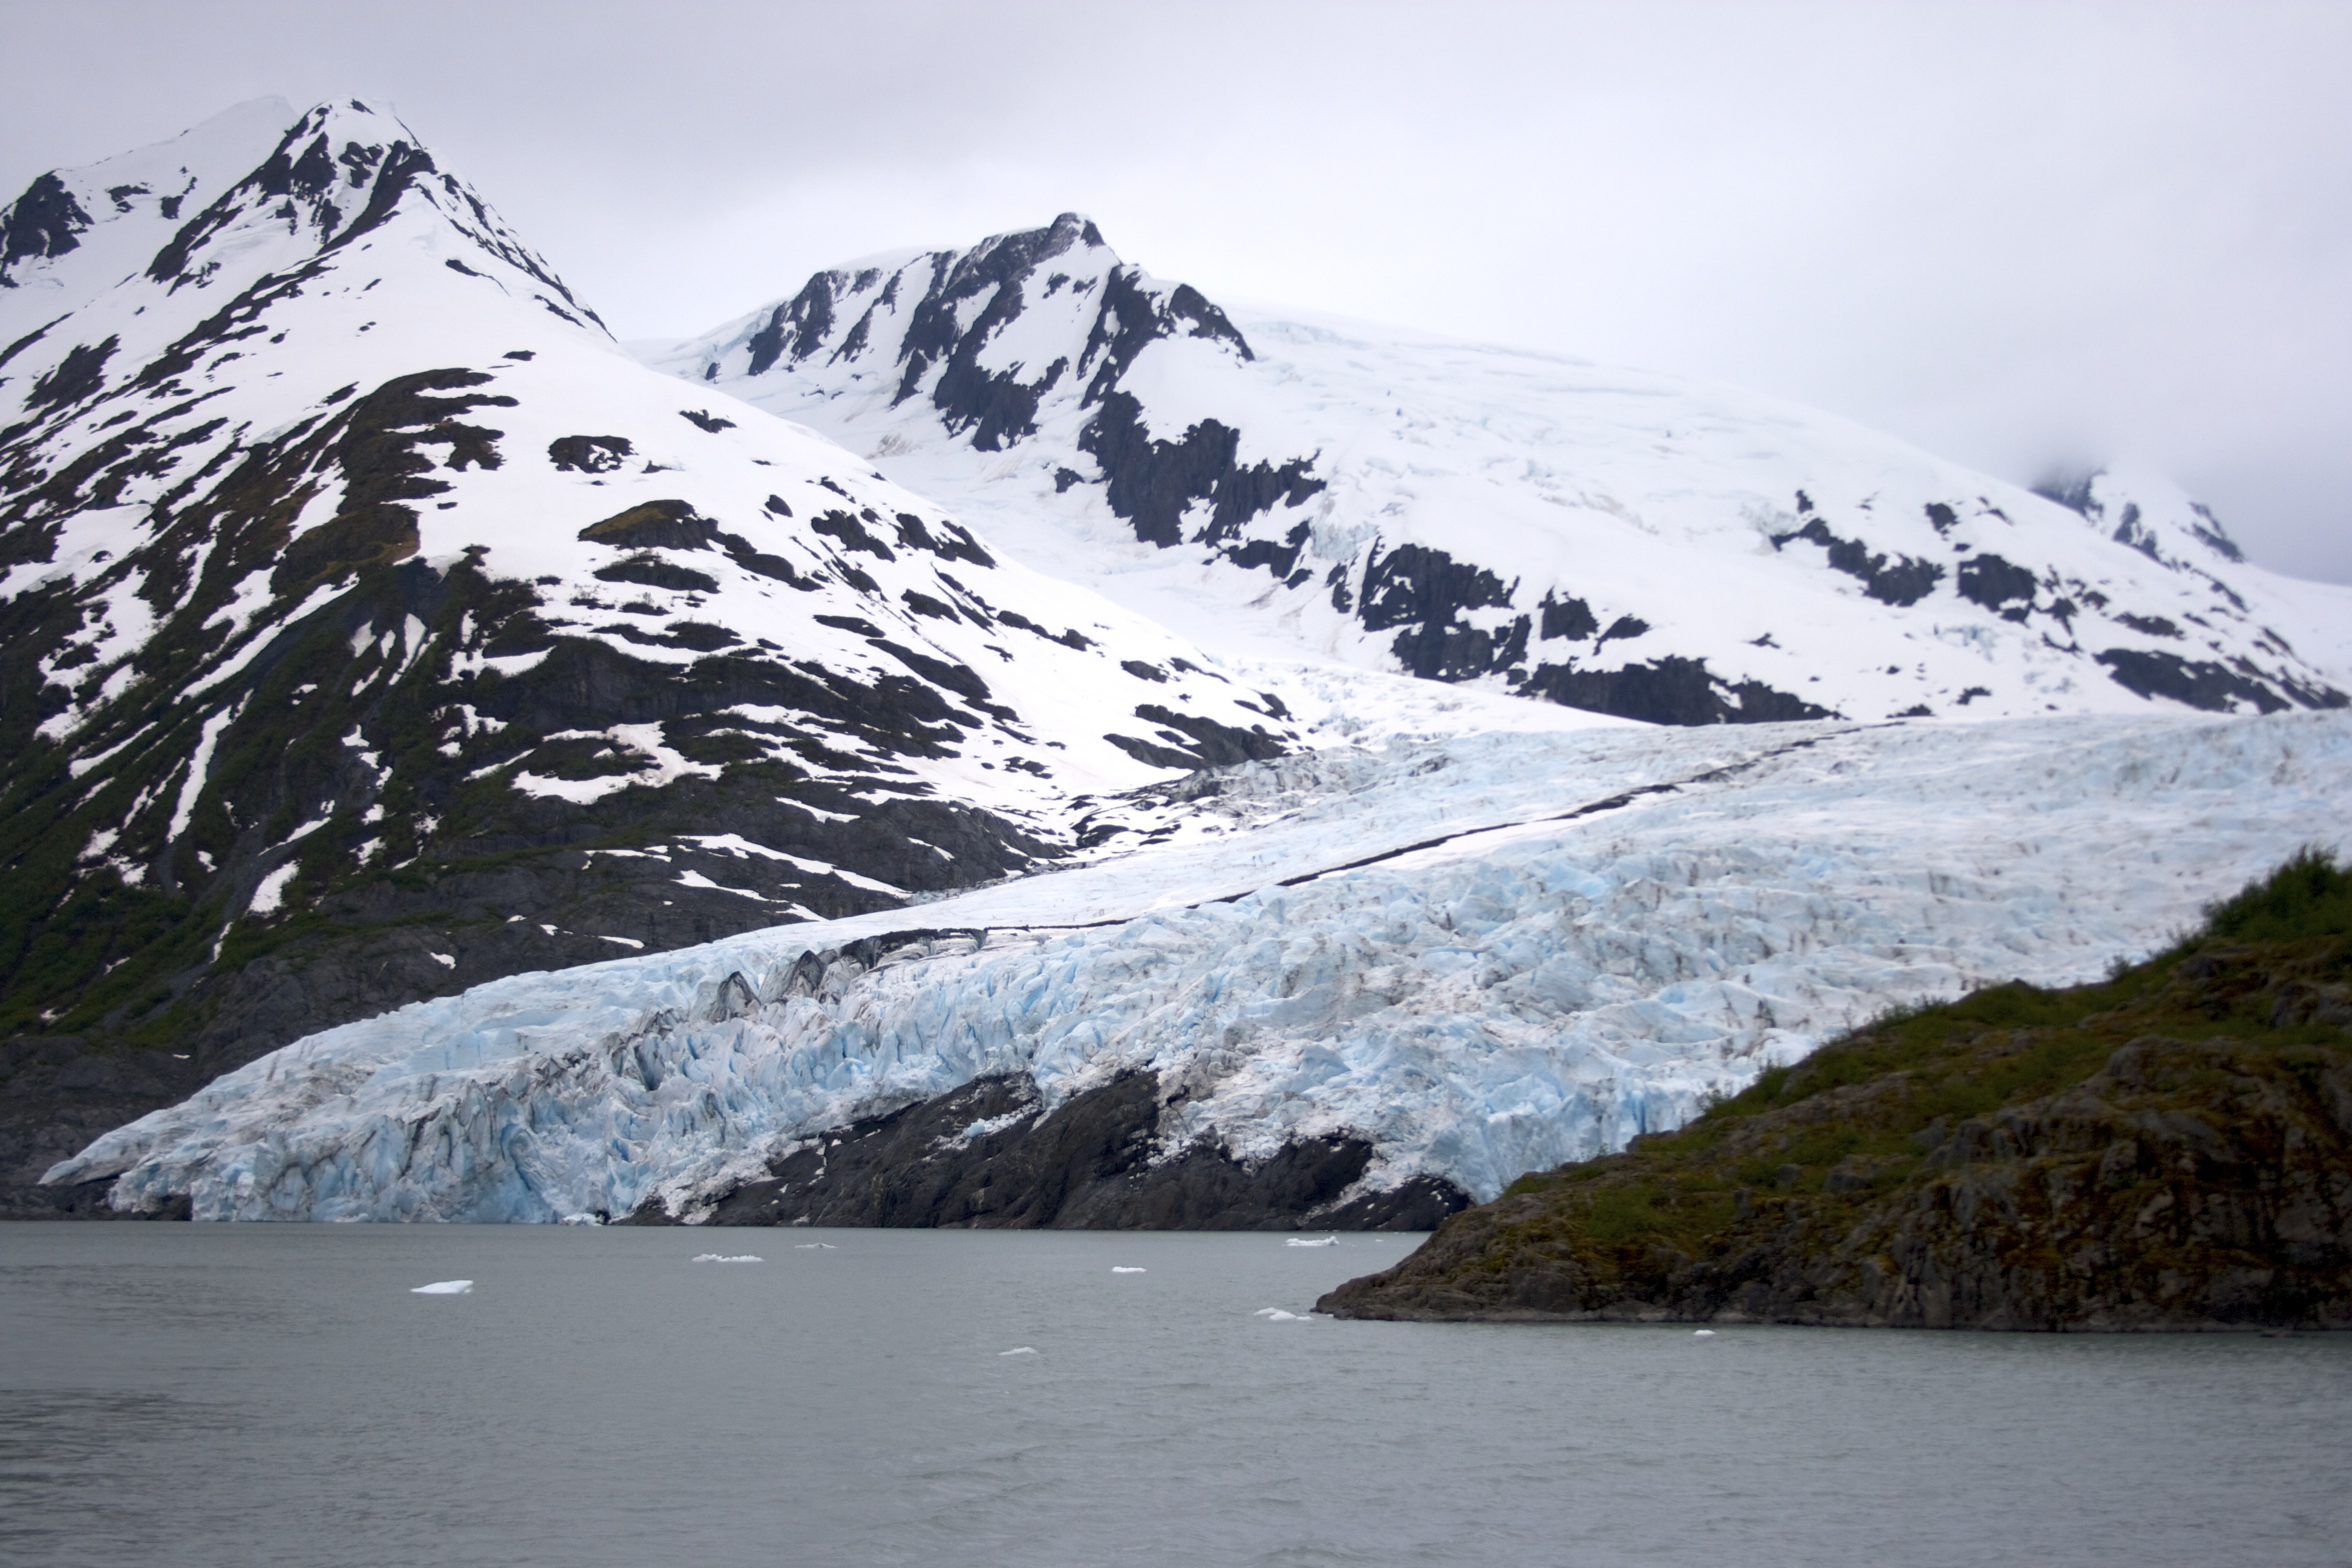 Meet the giant of Portage Lake - the Portage Glacier